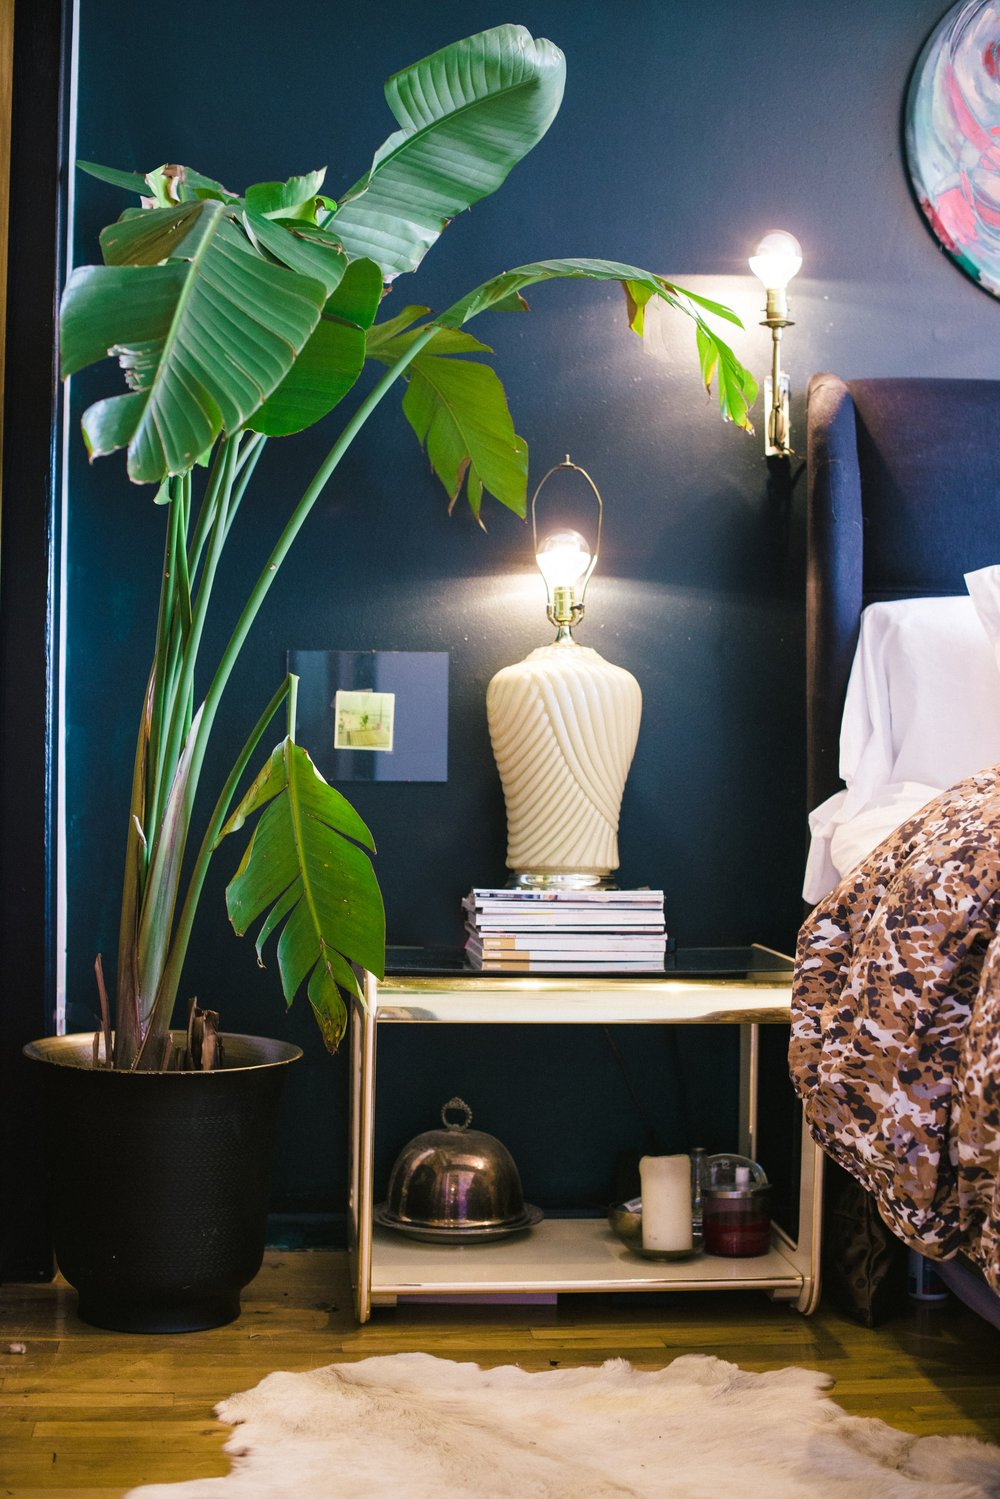 Bedroom bedside table with tall green plant